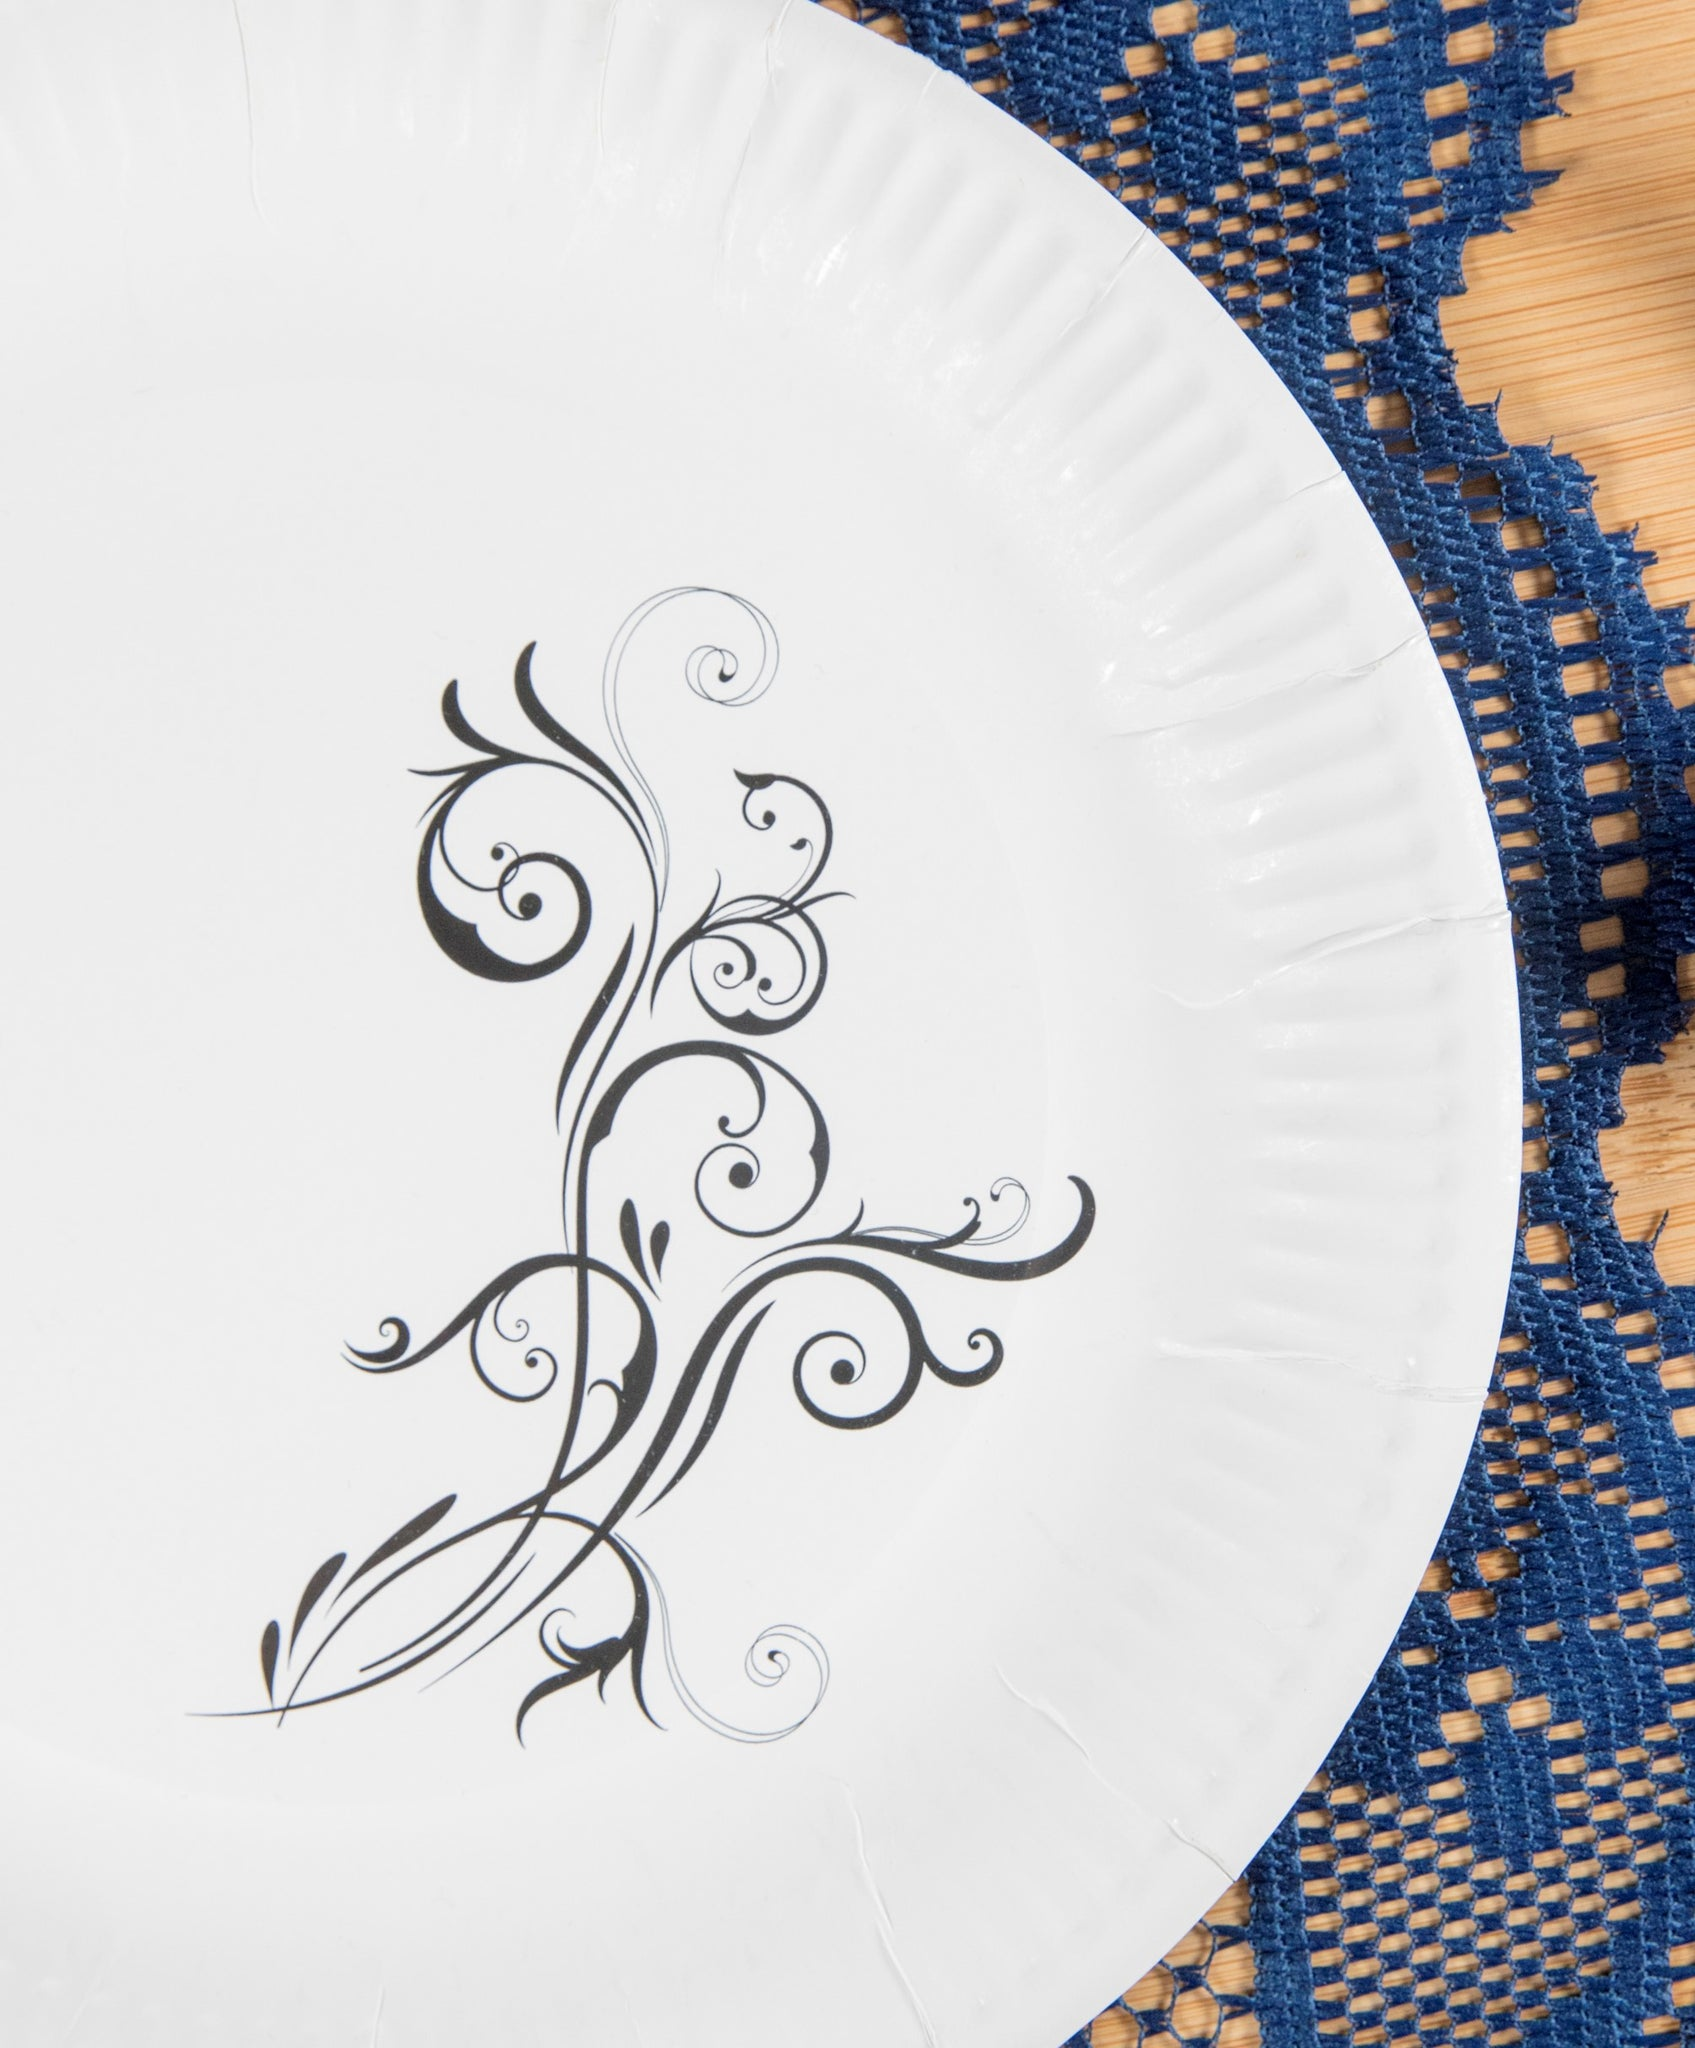 ... Black -Biodegradable and compostable disposable paper plates 10\  classic white round with ridged  sc 1 st  Swirly Ware & Black -Biodegradable and compostable disposable paper plates 10 ...